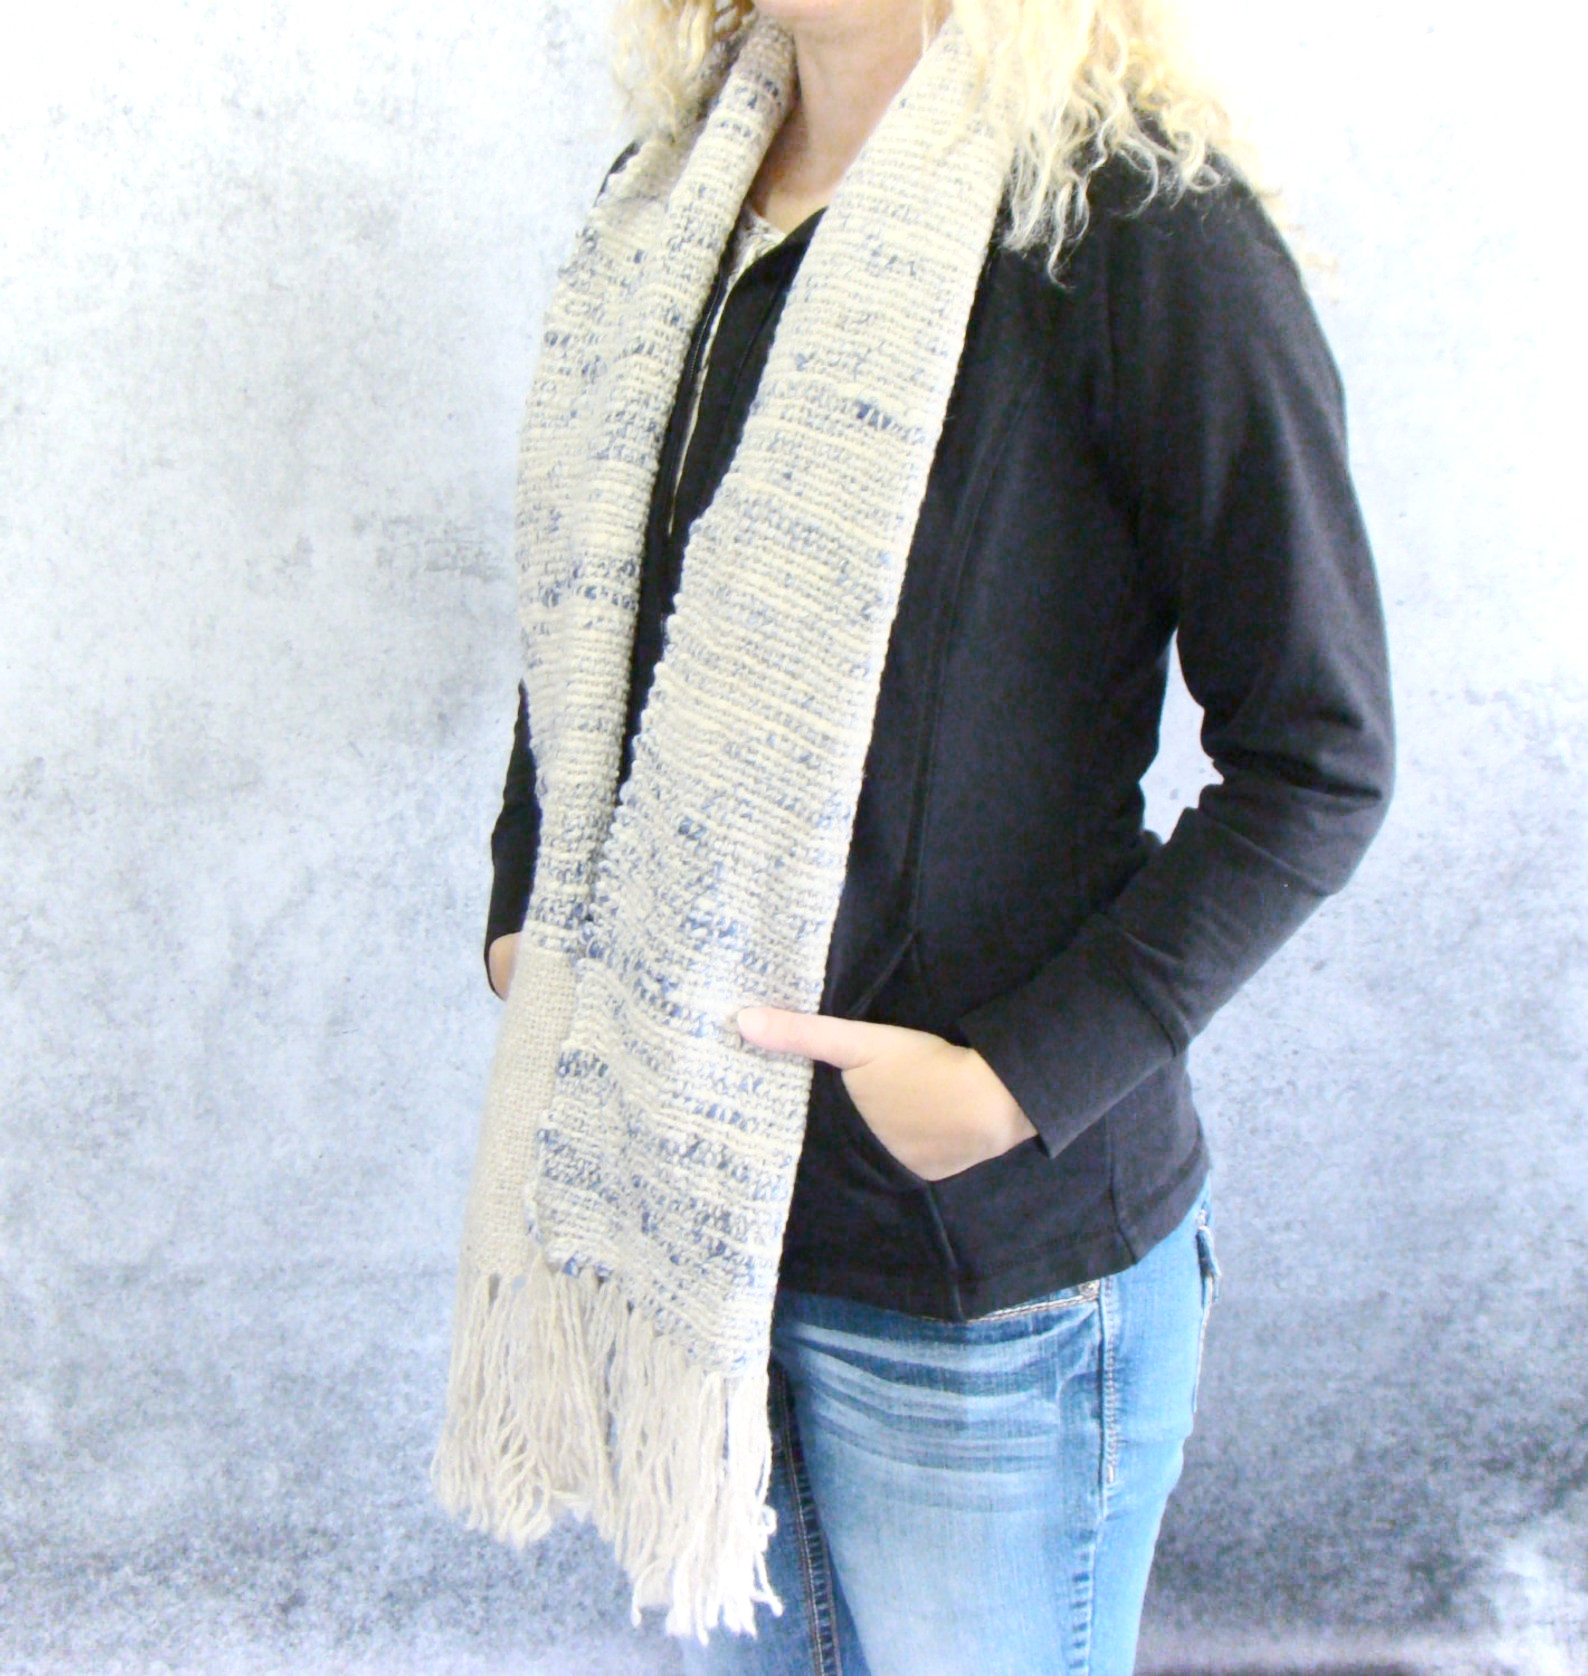 Blueberry Cheesecake Handwoven Scarf by Kristina Smiley